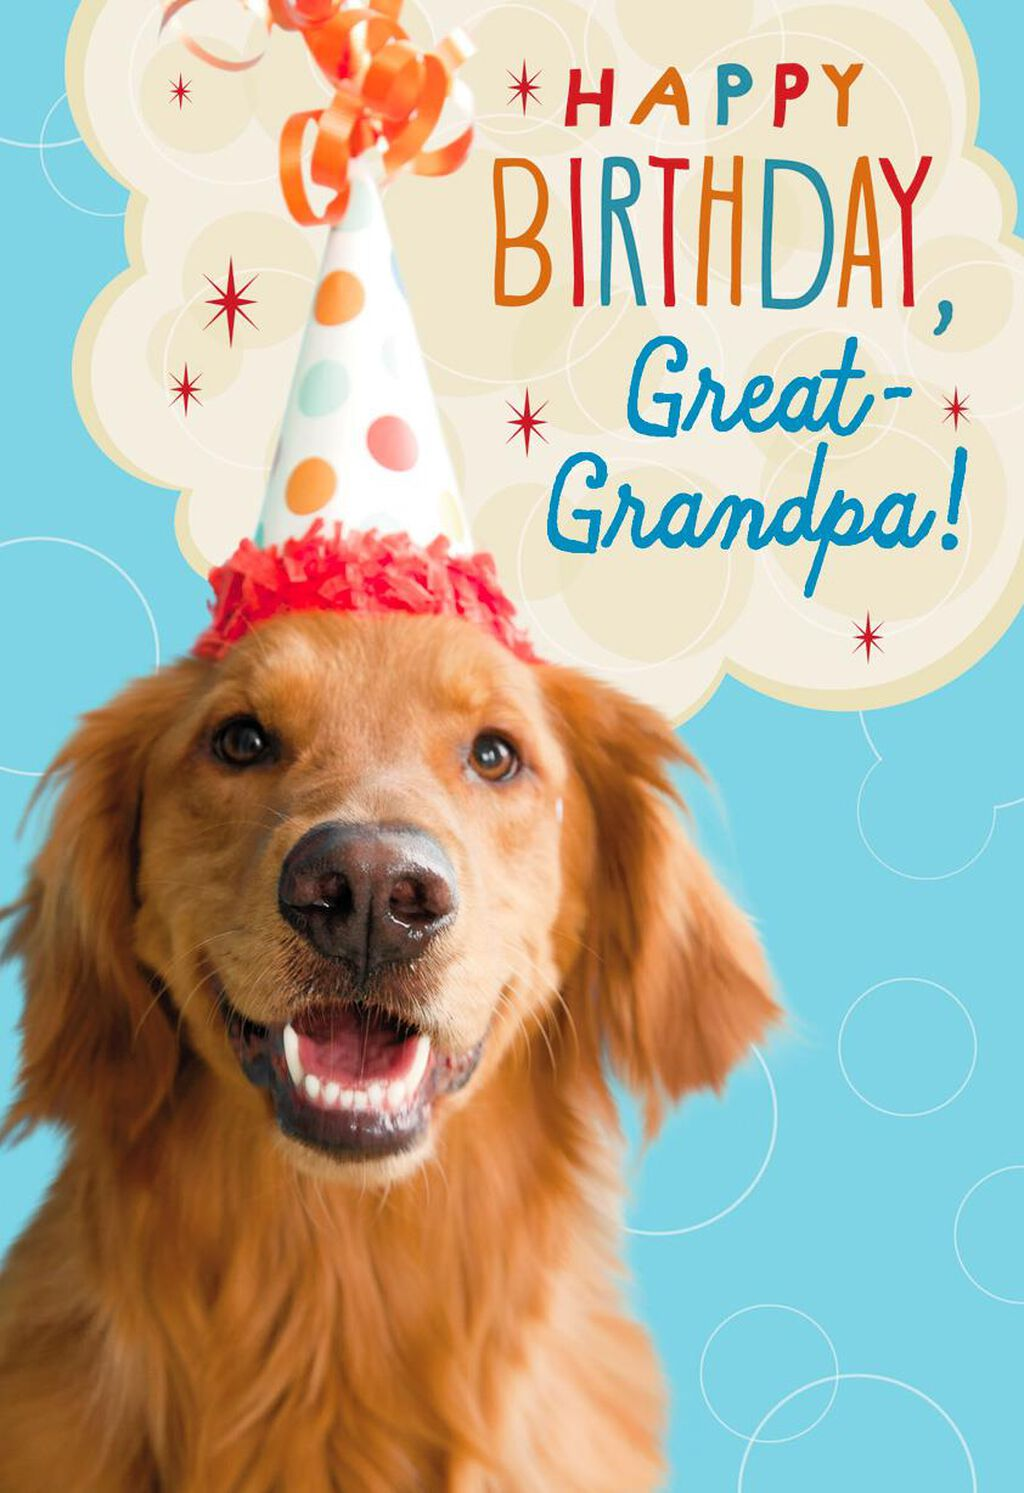 Party Dog Birthday Card For Great Grandpa Greeting Cards Hallmark